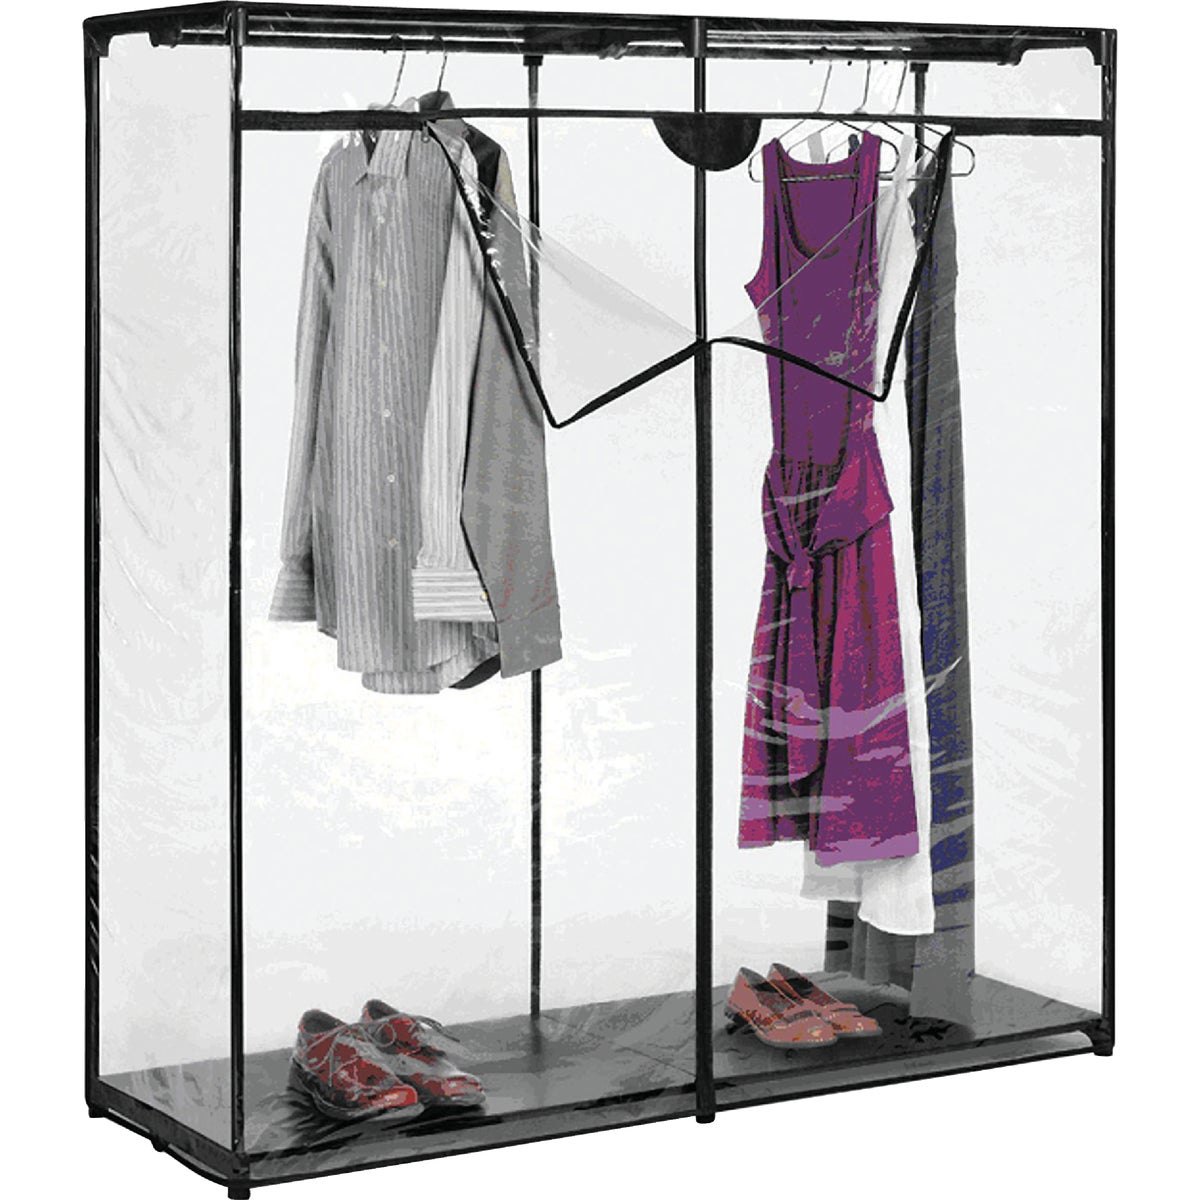 CLOTHES CLOSET - 6013-167 by Whitmor Mfg